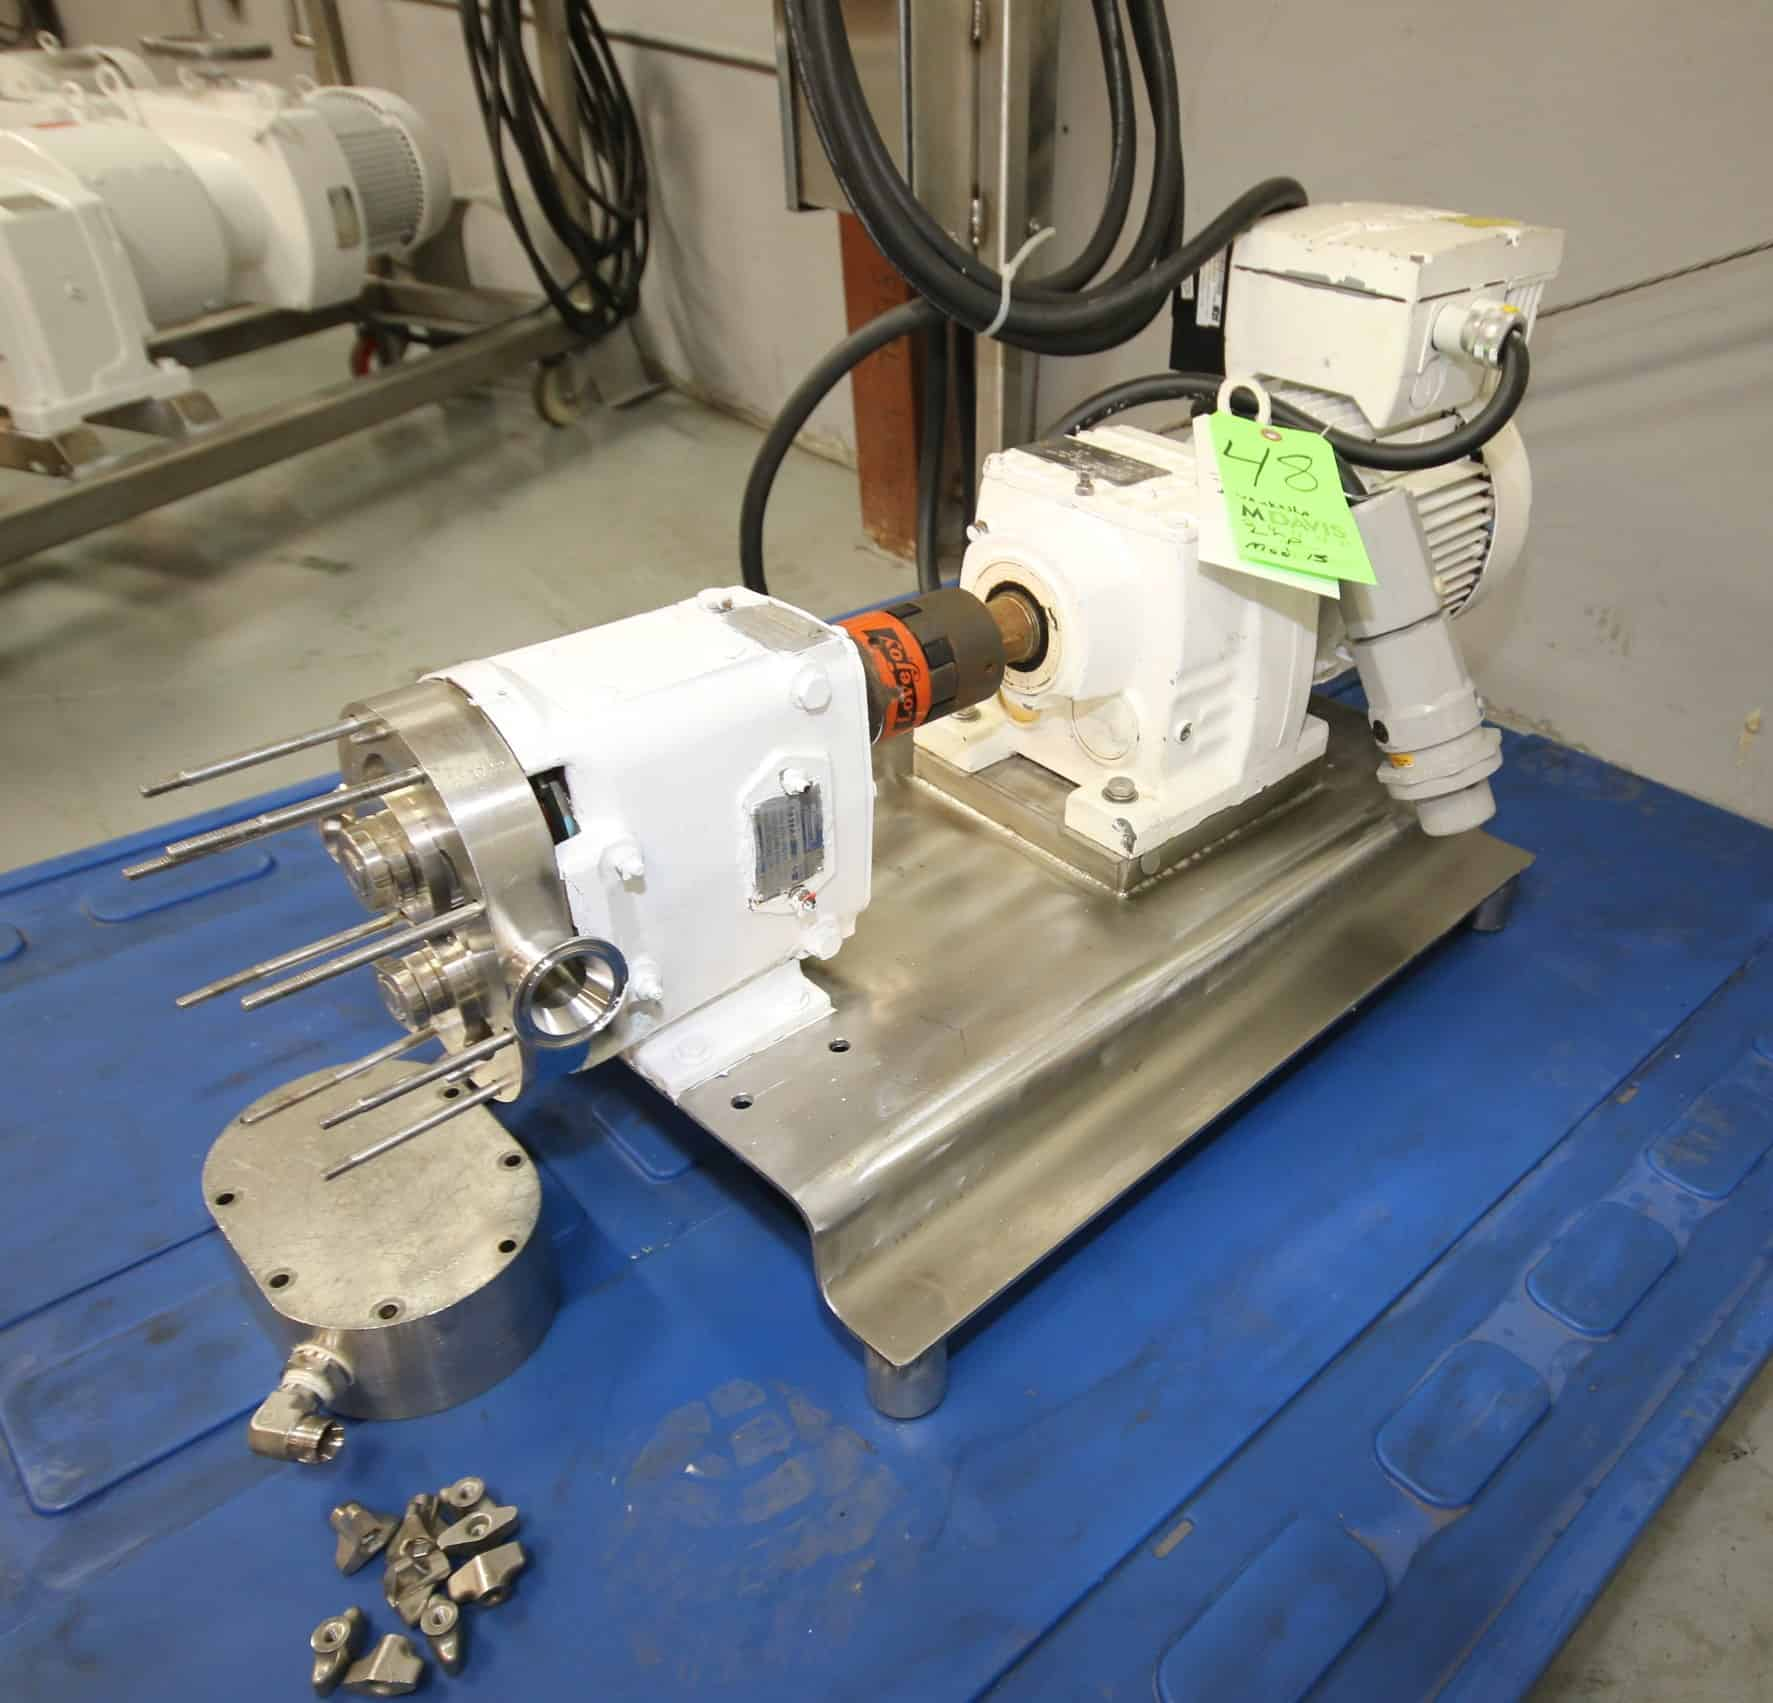 "Waukesha Positive Displacement Pump, Model 15, S/N 123722 with 1-1/2"" x 1-1/2"" Clamp Type S/S Jacketed Head with Cooling Capabilities, Mobilgear 630 Gear Ratio 21.93, 213 - 1720 Gear, Sew-Eurodrive 2 hp Drive Motor, 218-1720 RPM, 460Y V, 3 Phase, Onboard VFD Controller, Mounted on S/S Frame"